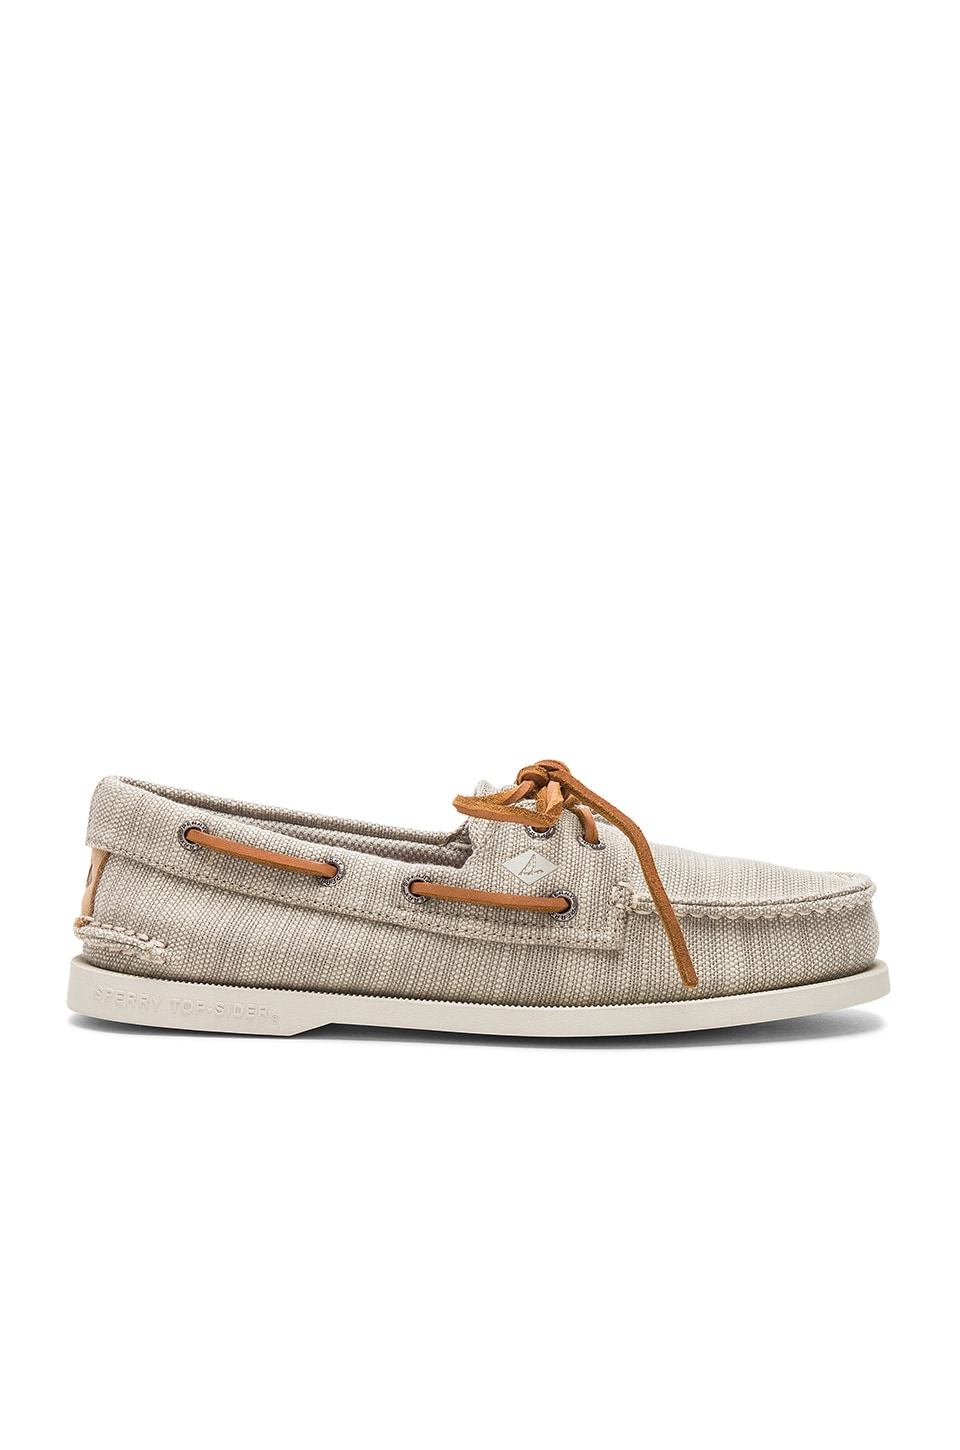 AO 2 Eye Baja by Sperry Top-Sider